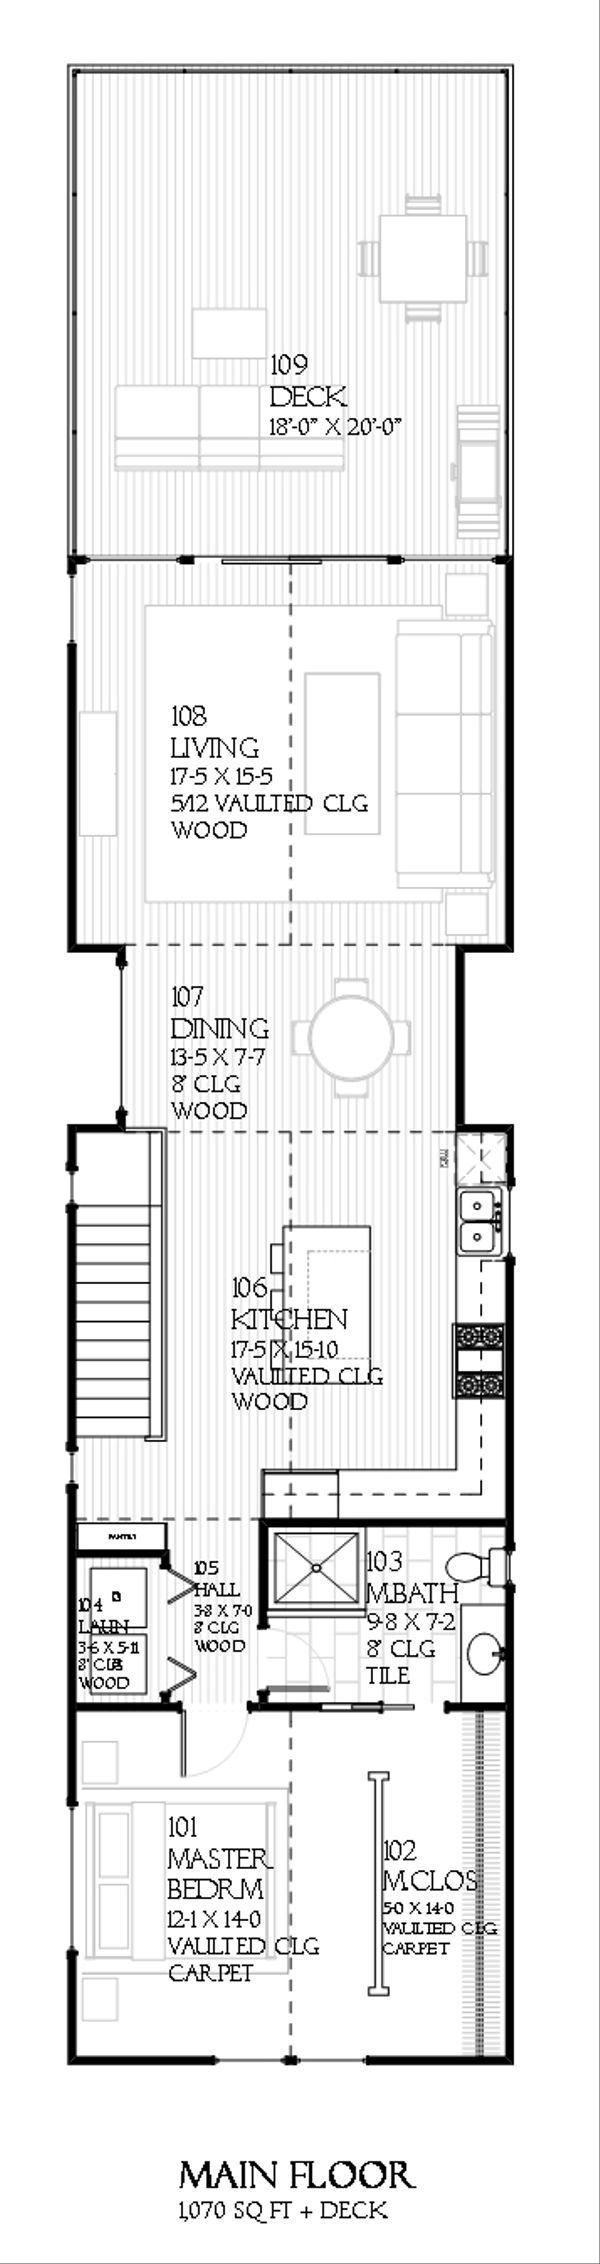 Contemporary house plan, Upper level floor plan of plan 901-25